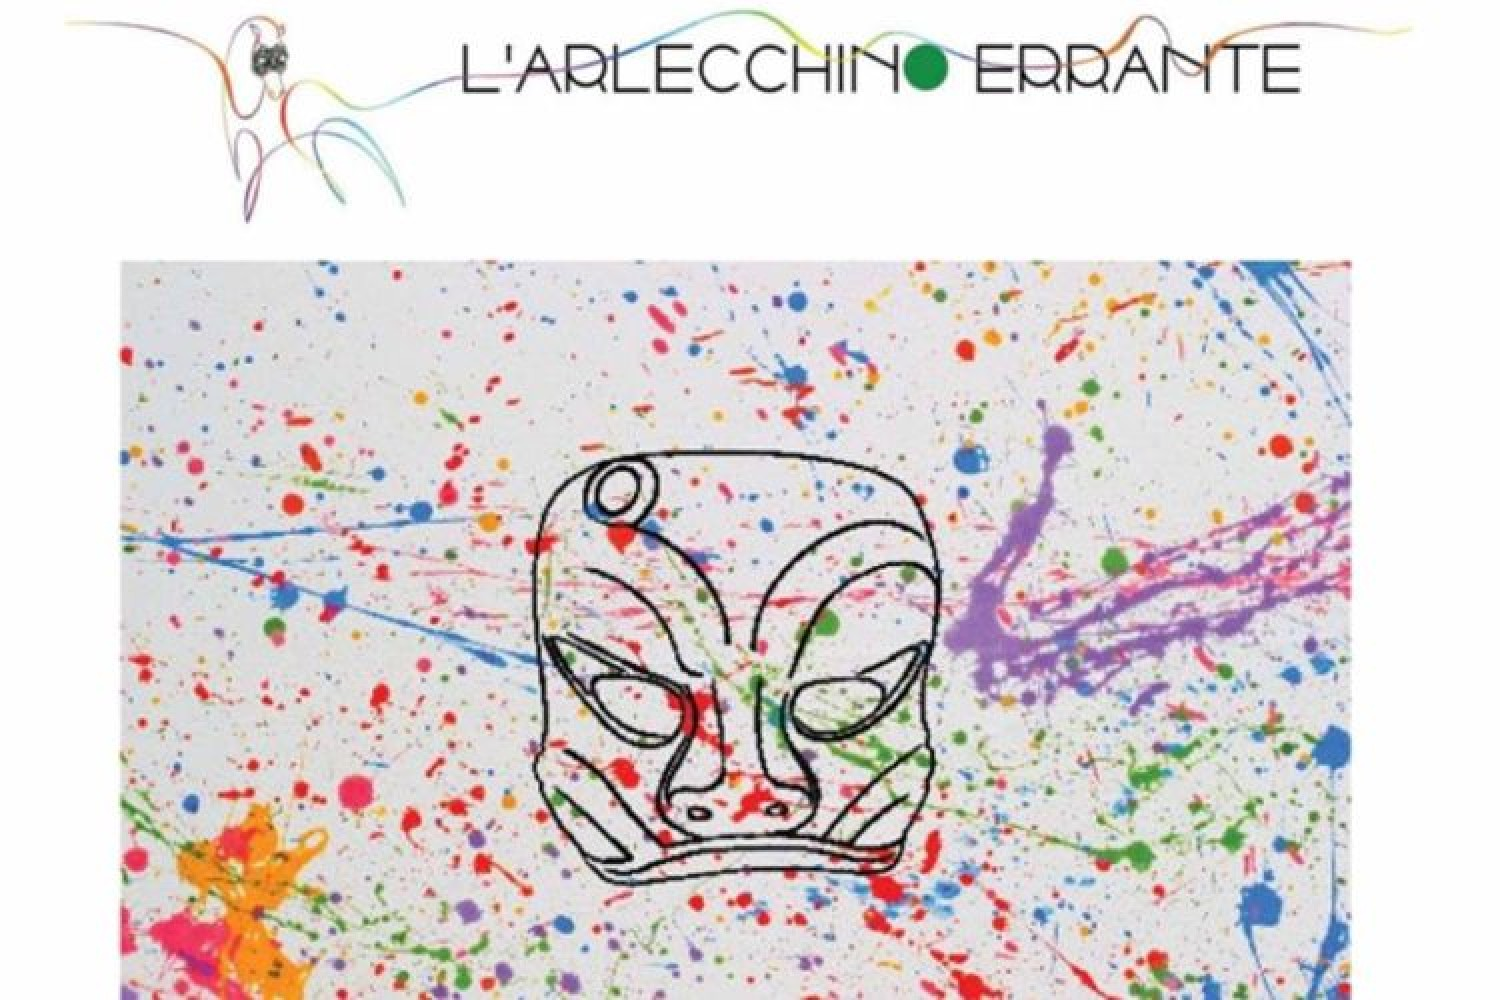 L'ARLECCHINO ERRANTE. The New Commedia dell'arte International Master